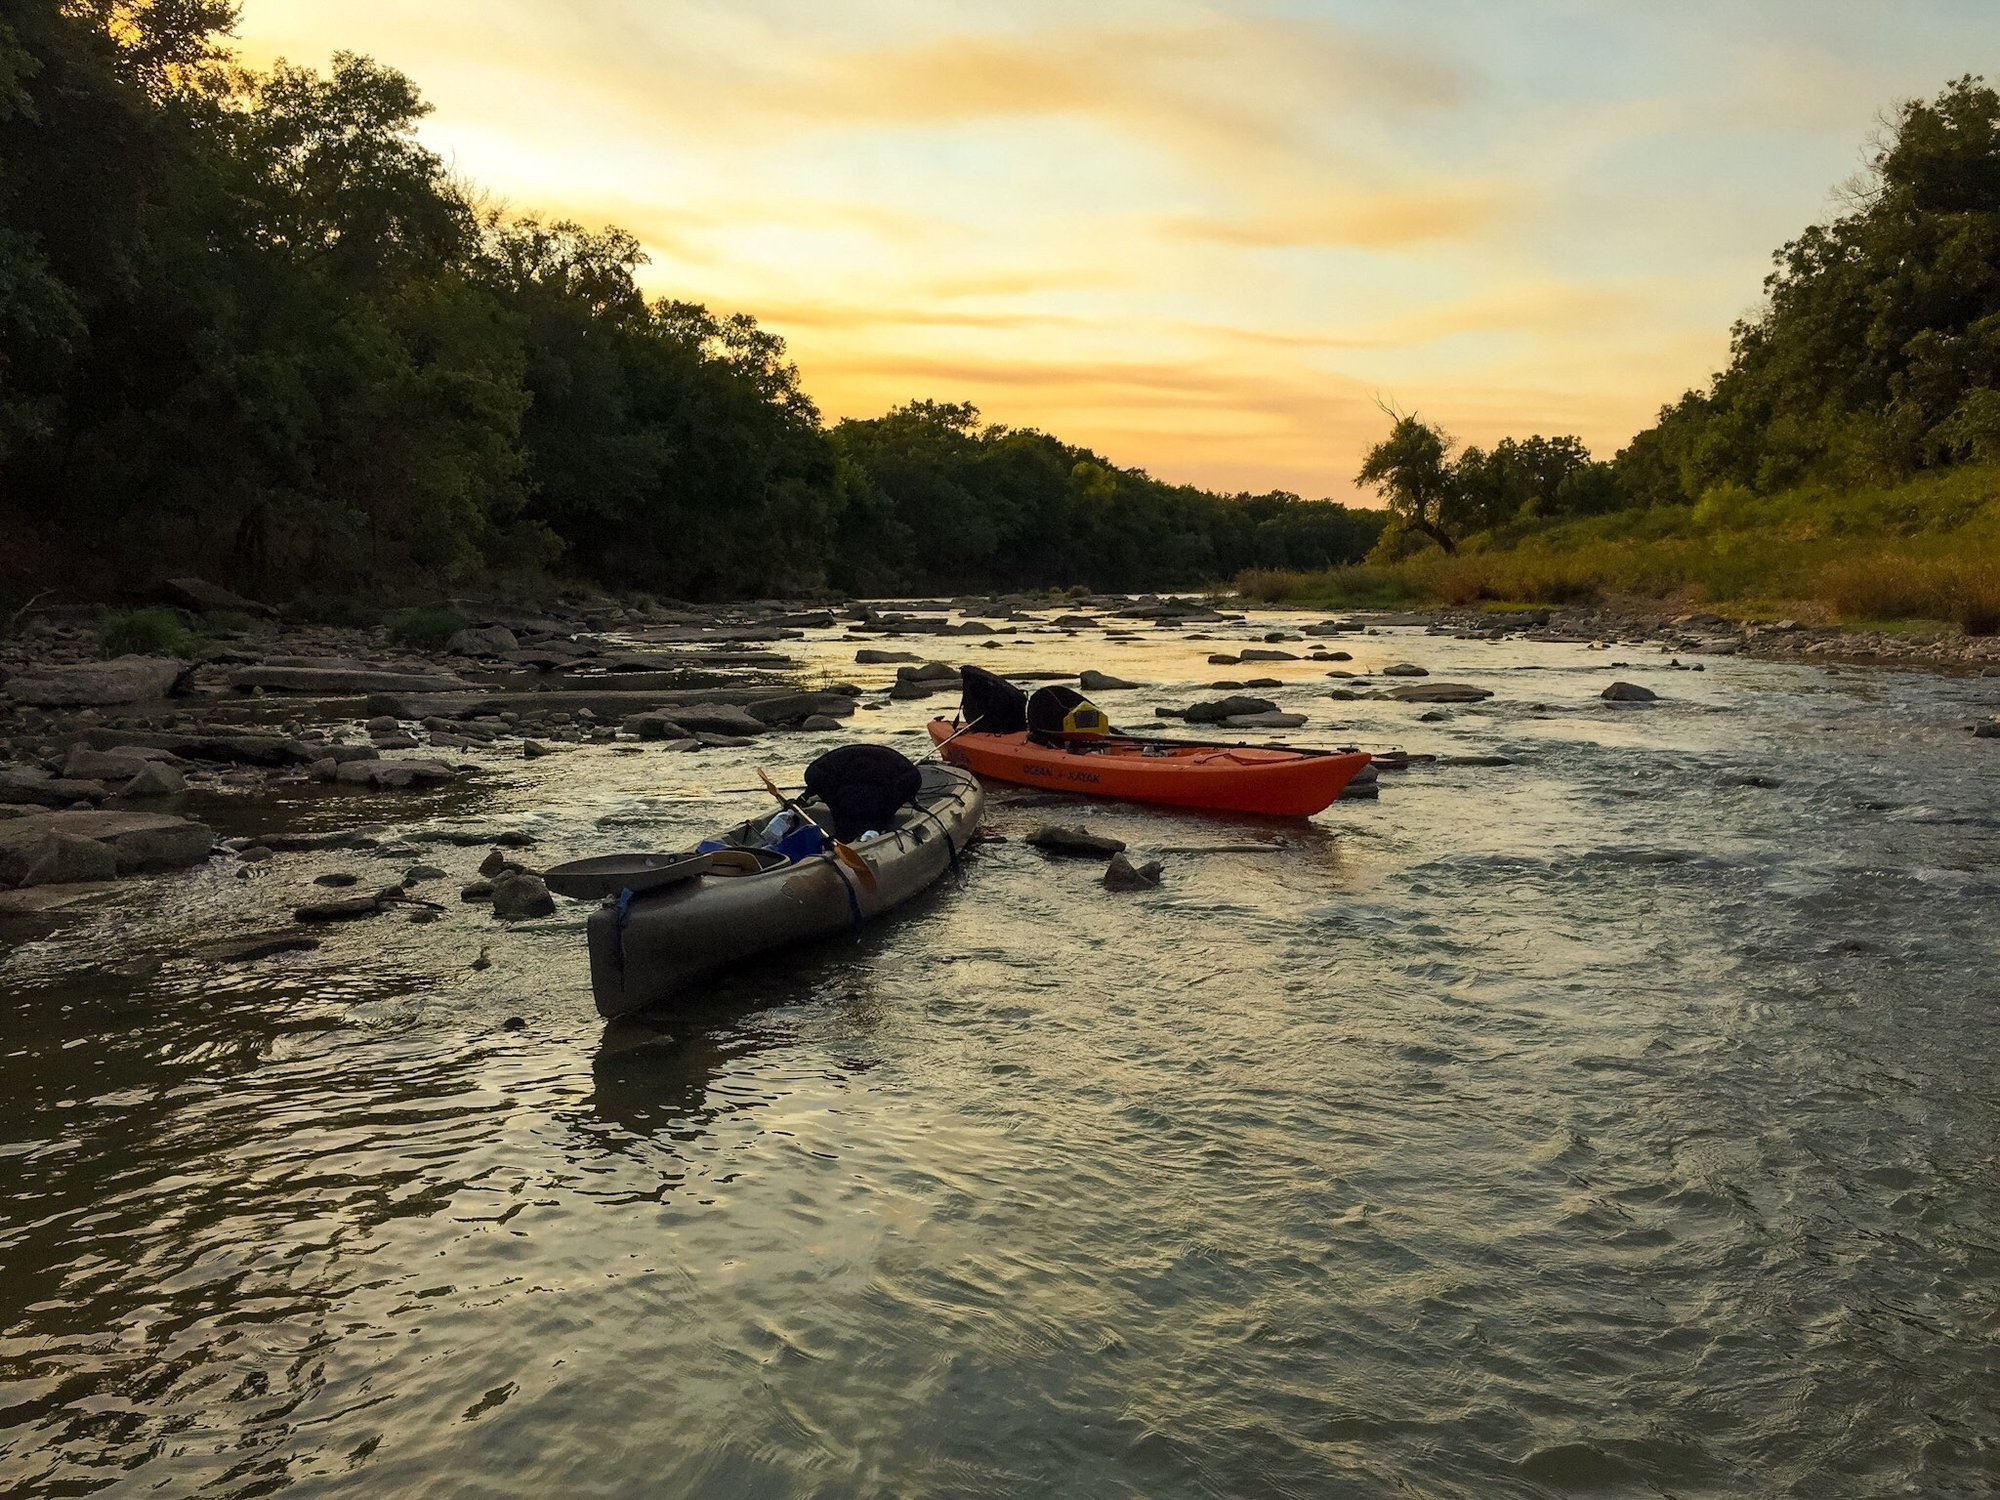 Photo of kayaks on the Colorado River at sunset in San Saba County, Texas